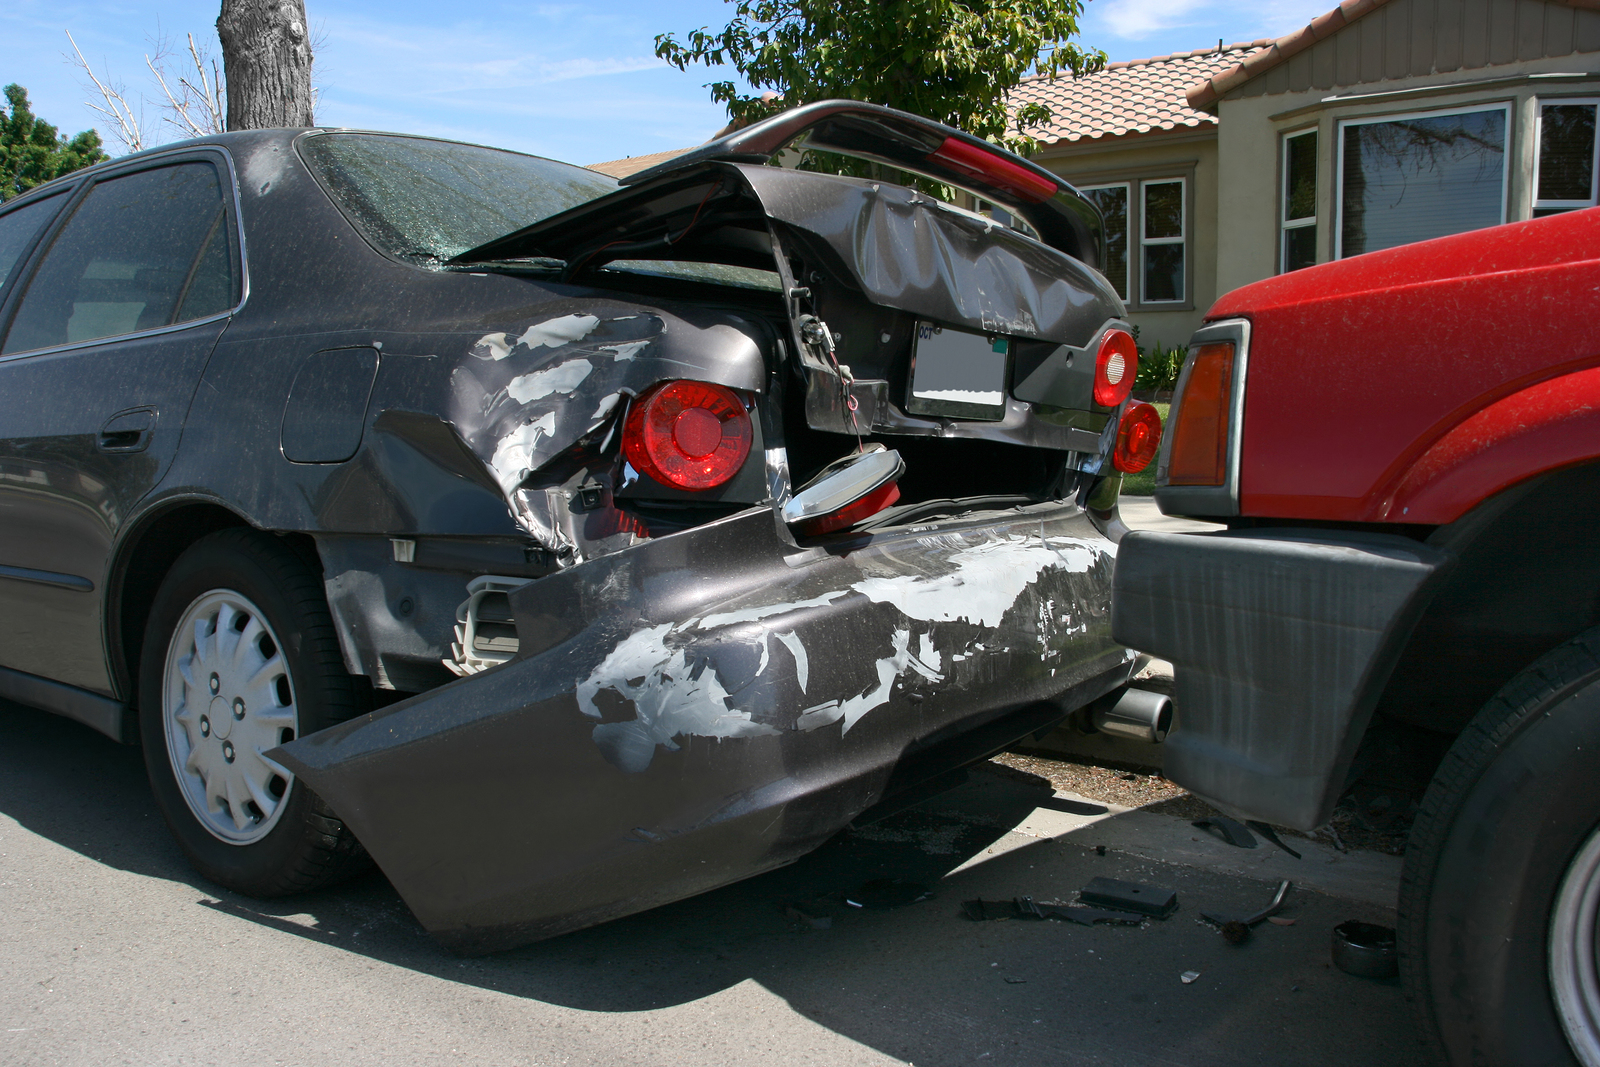 Get Your Life Back After a Car Accident Injury